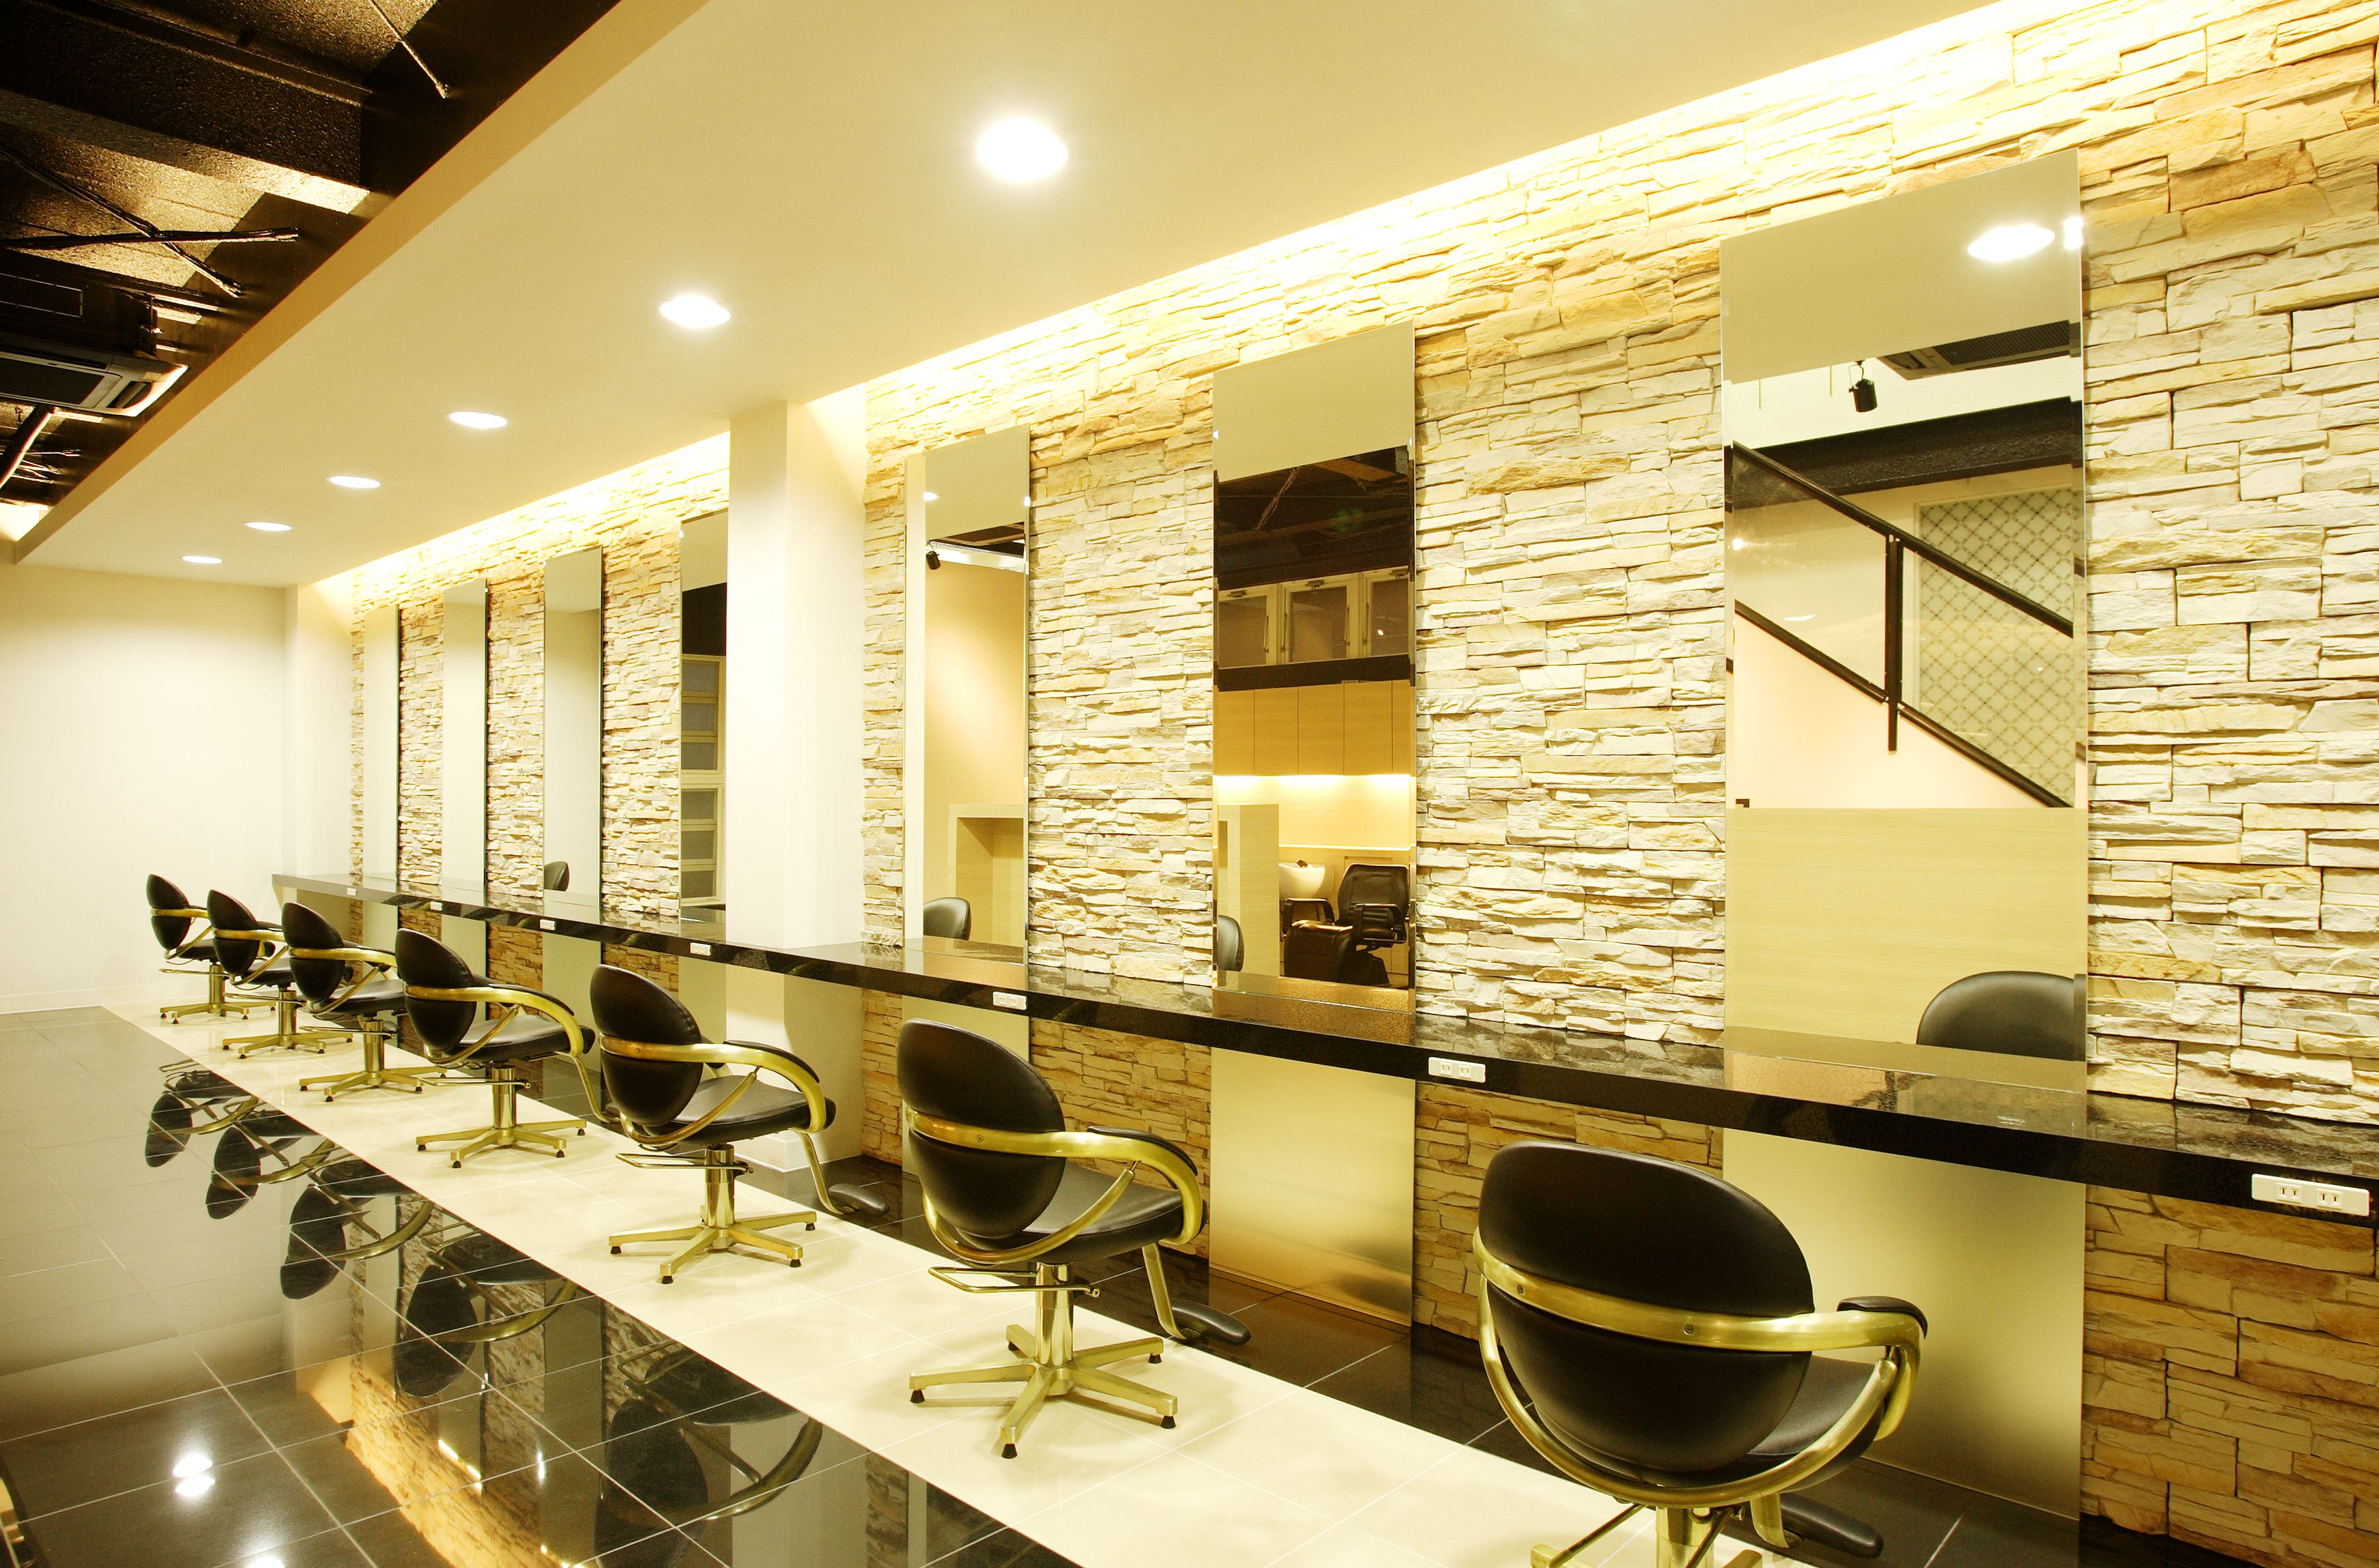 Beauty salon interior design ideas | + hair + space + decor + ...